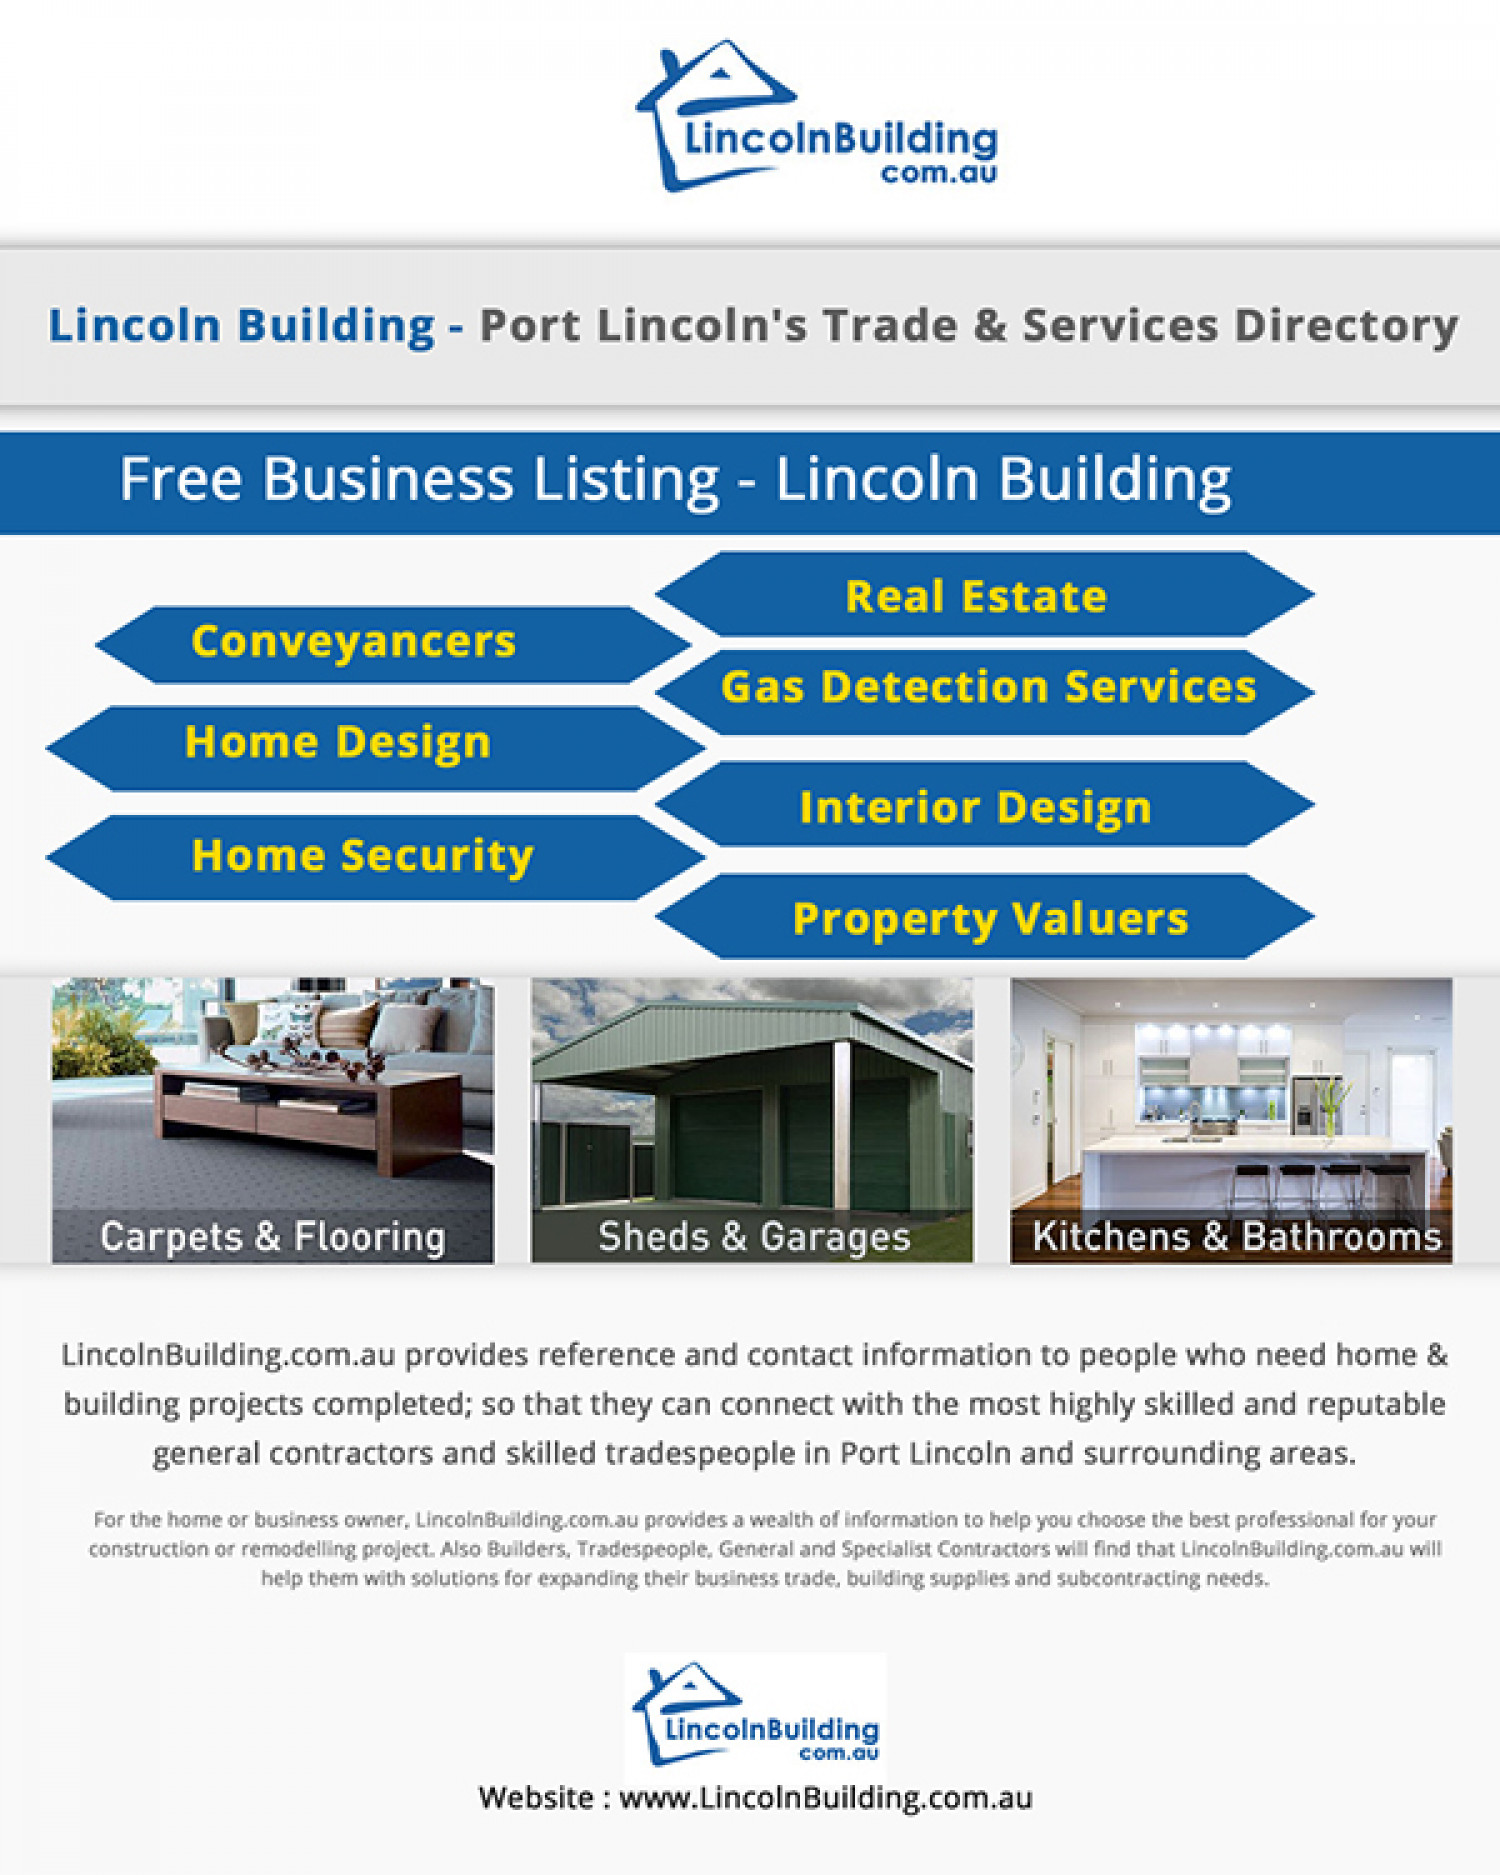 Trades Directory Trades: Port Lincoln's Trade & Services Directory